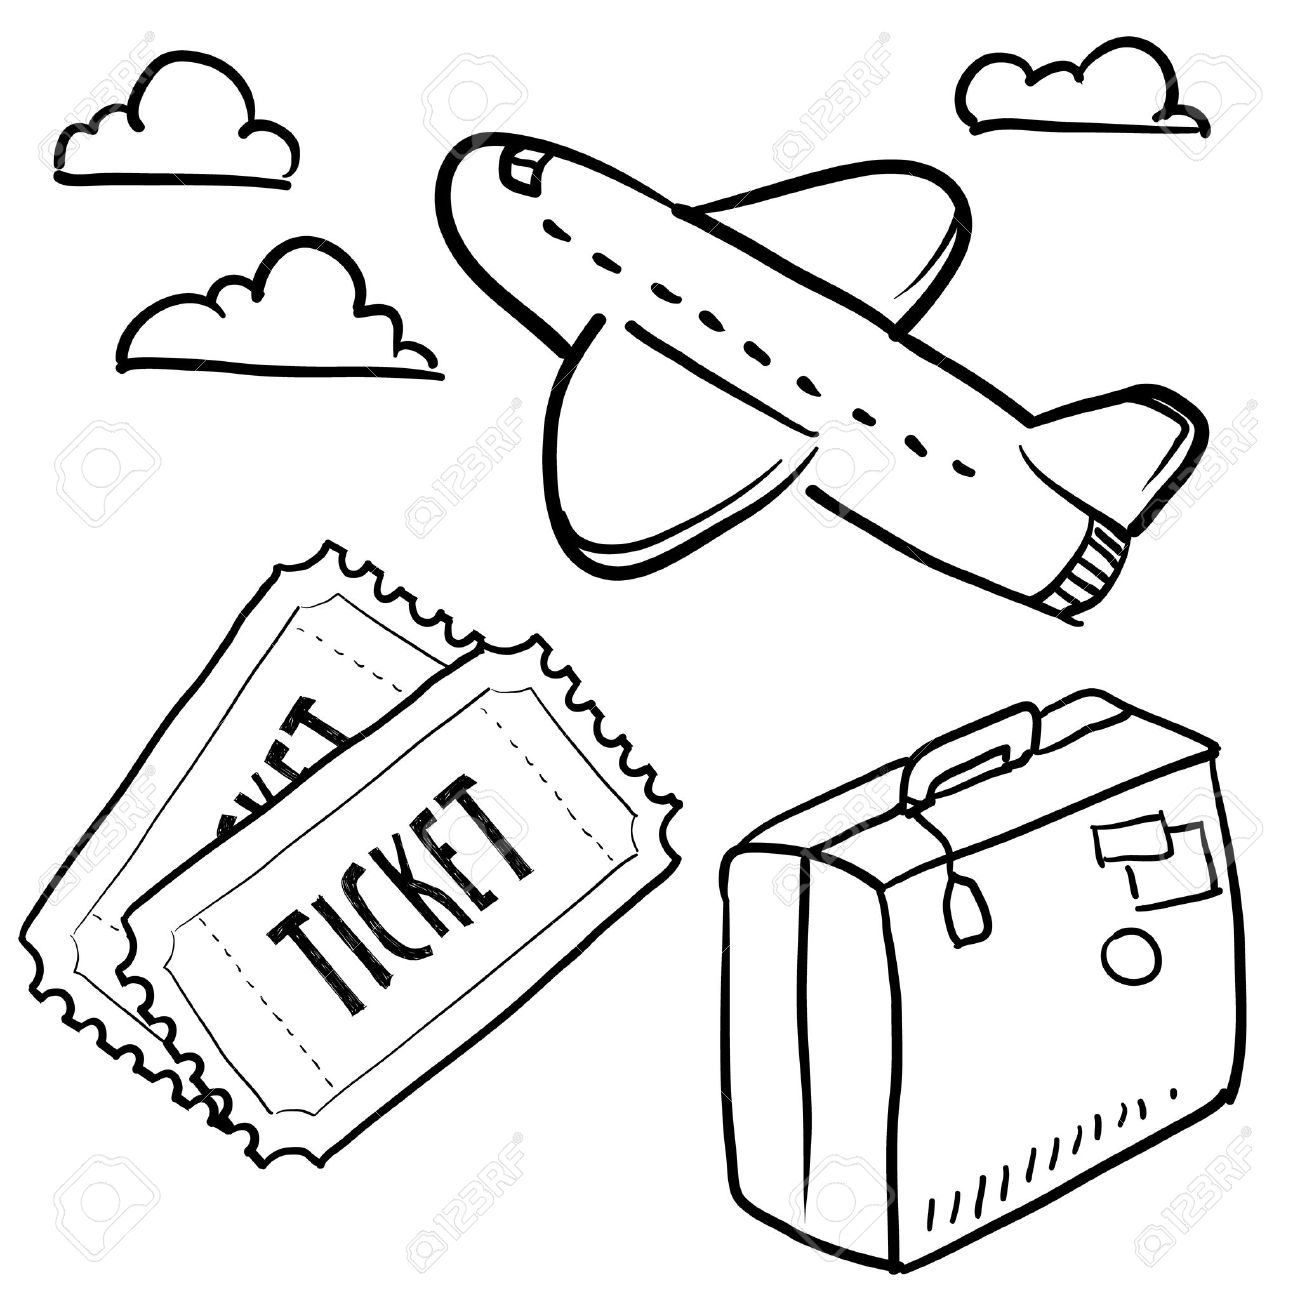 Doodle Style Air Travel Sketch In Vector Format Set Includes Plane Tickets Luggage